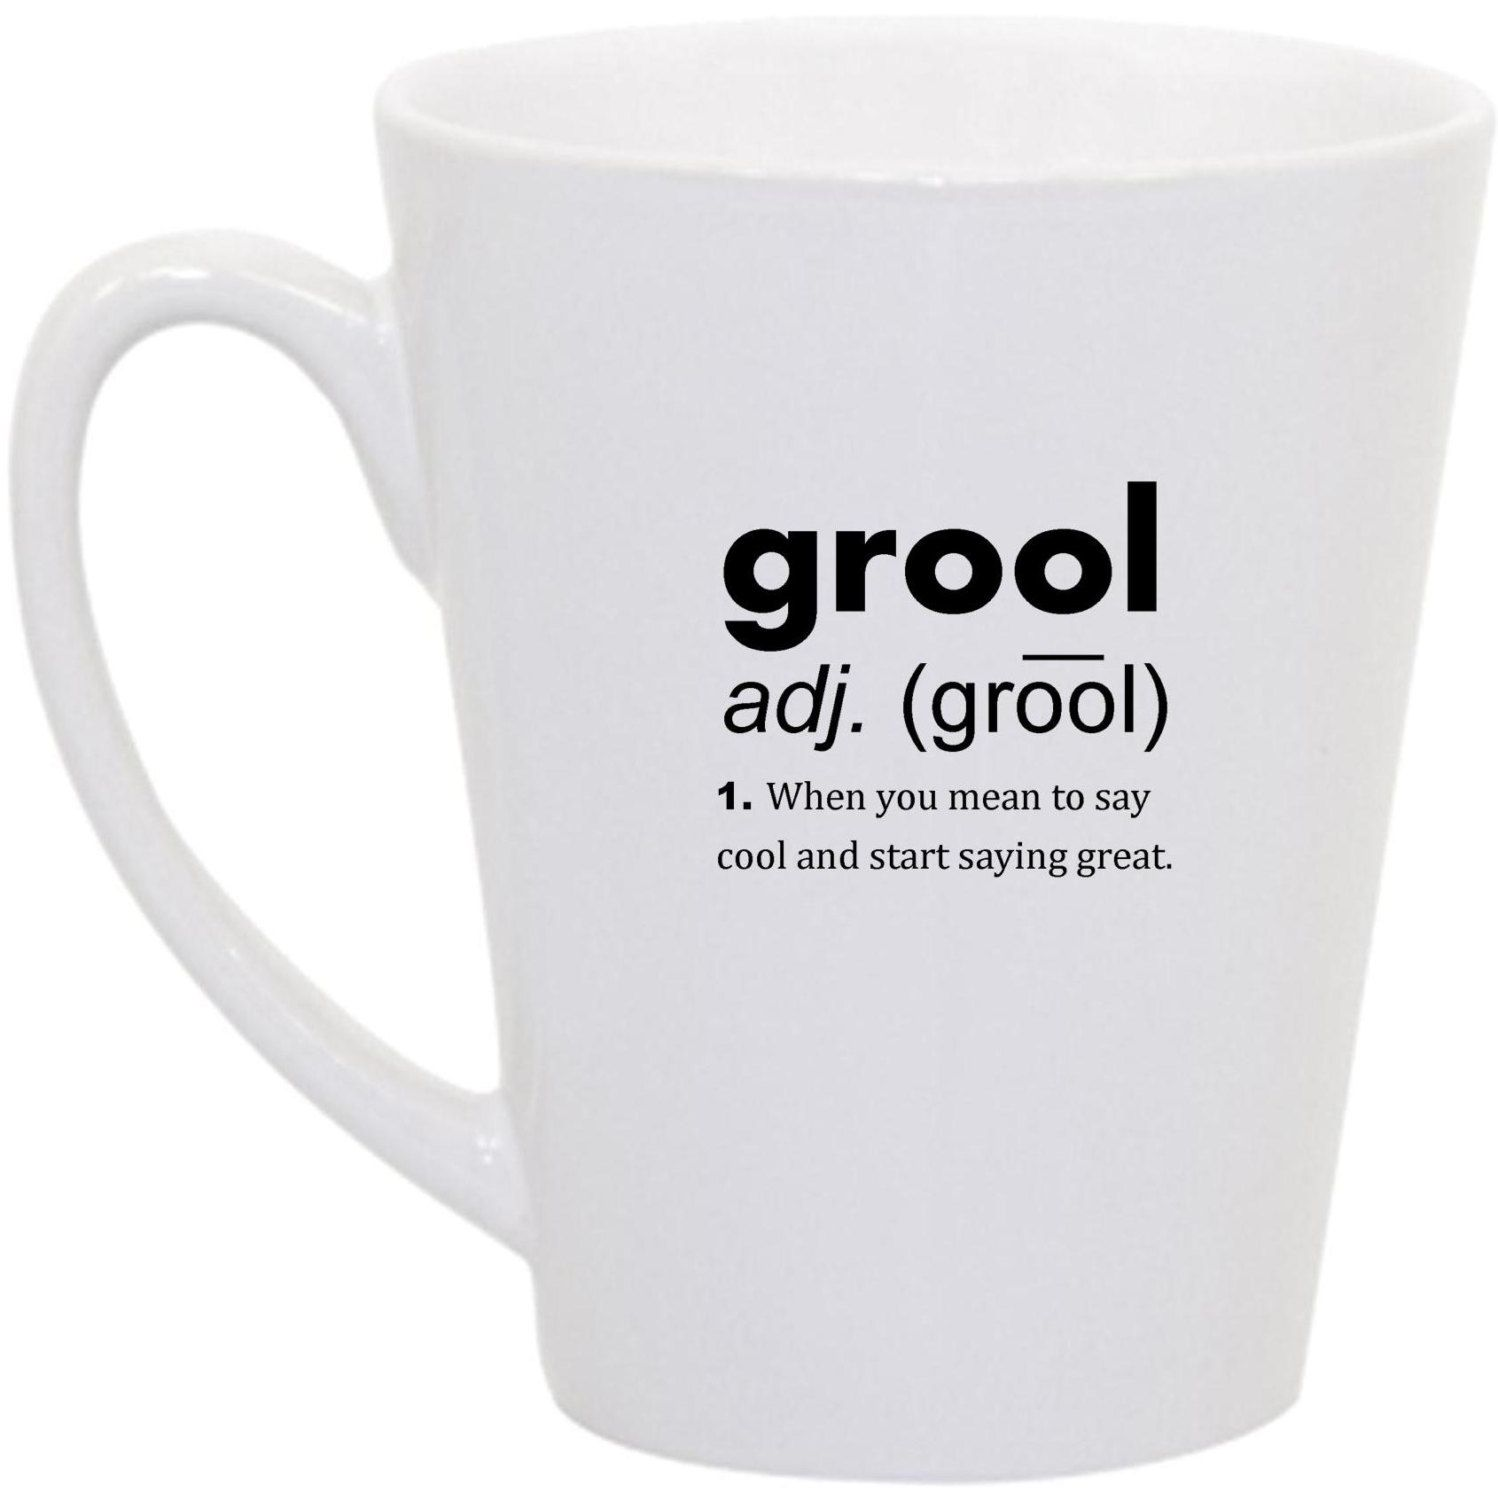 Grool definition mean girls inspired coffee mug coffee and girls grool definition mean girls inspired coffee mug voltagebd Choice Image